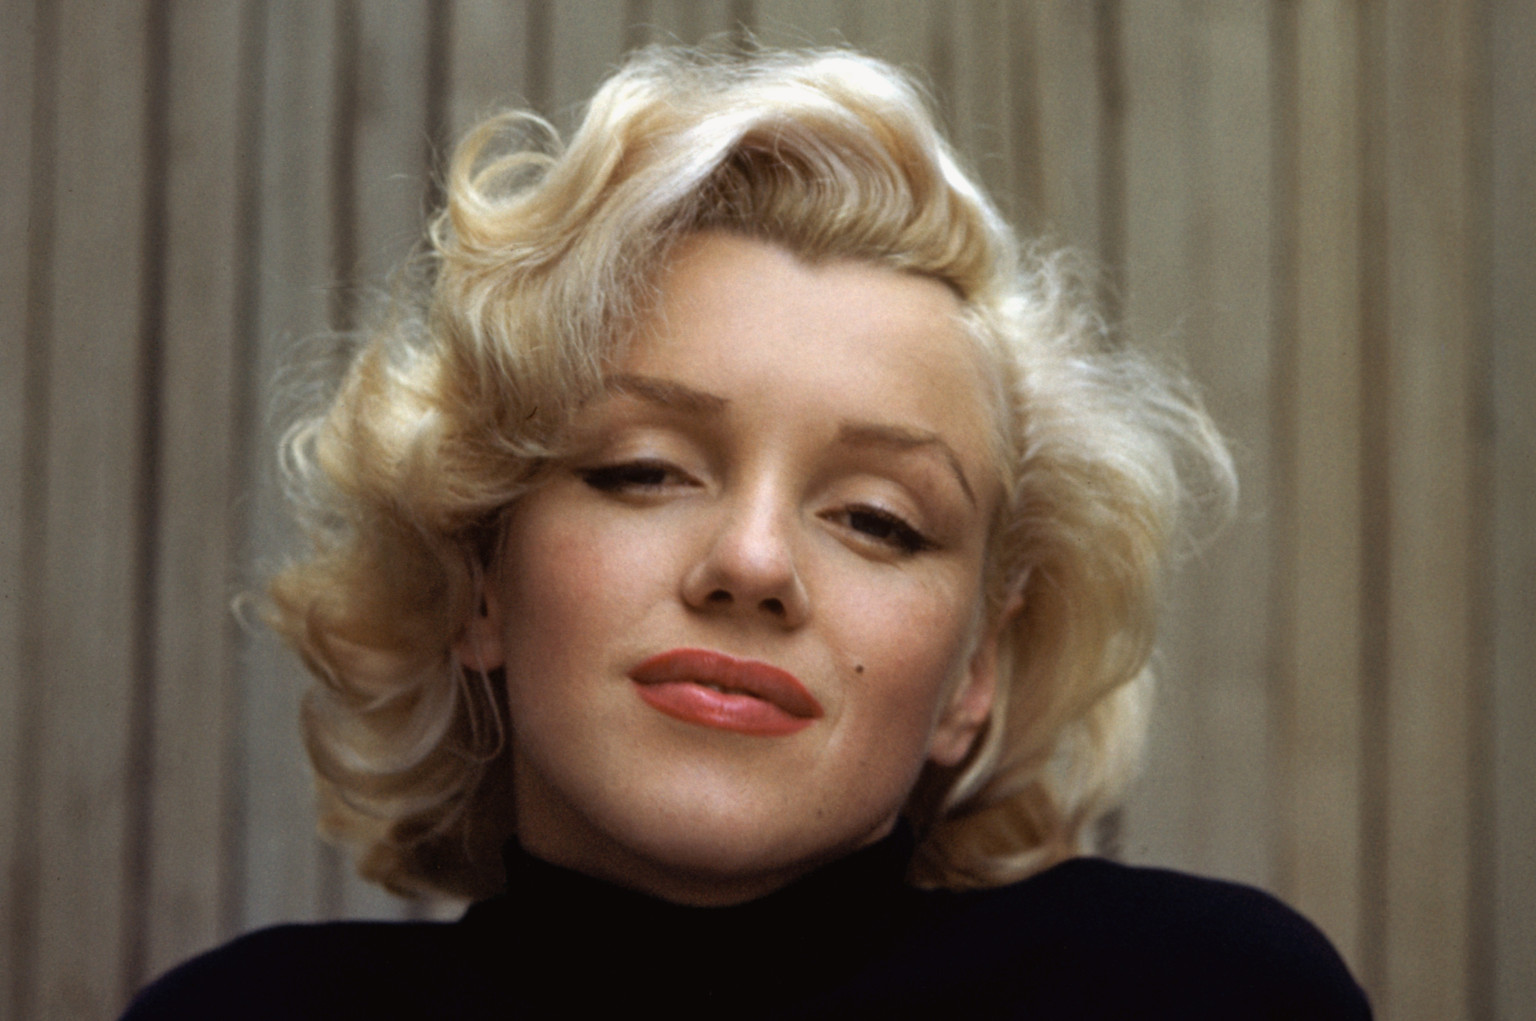 Vintage hairstyling tips that will make you look like a modern-day Marilyn  Monroe - HelloGiggles 2c4a9d5e6407